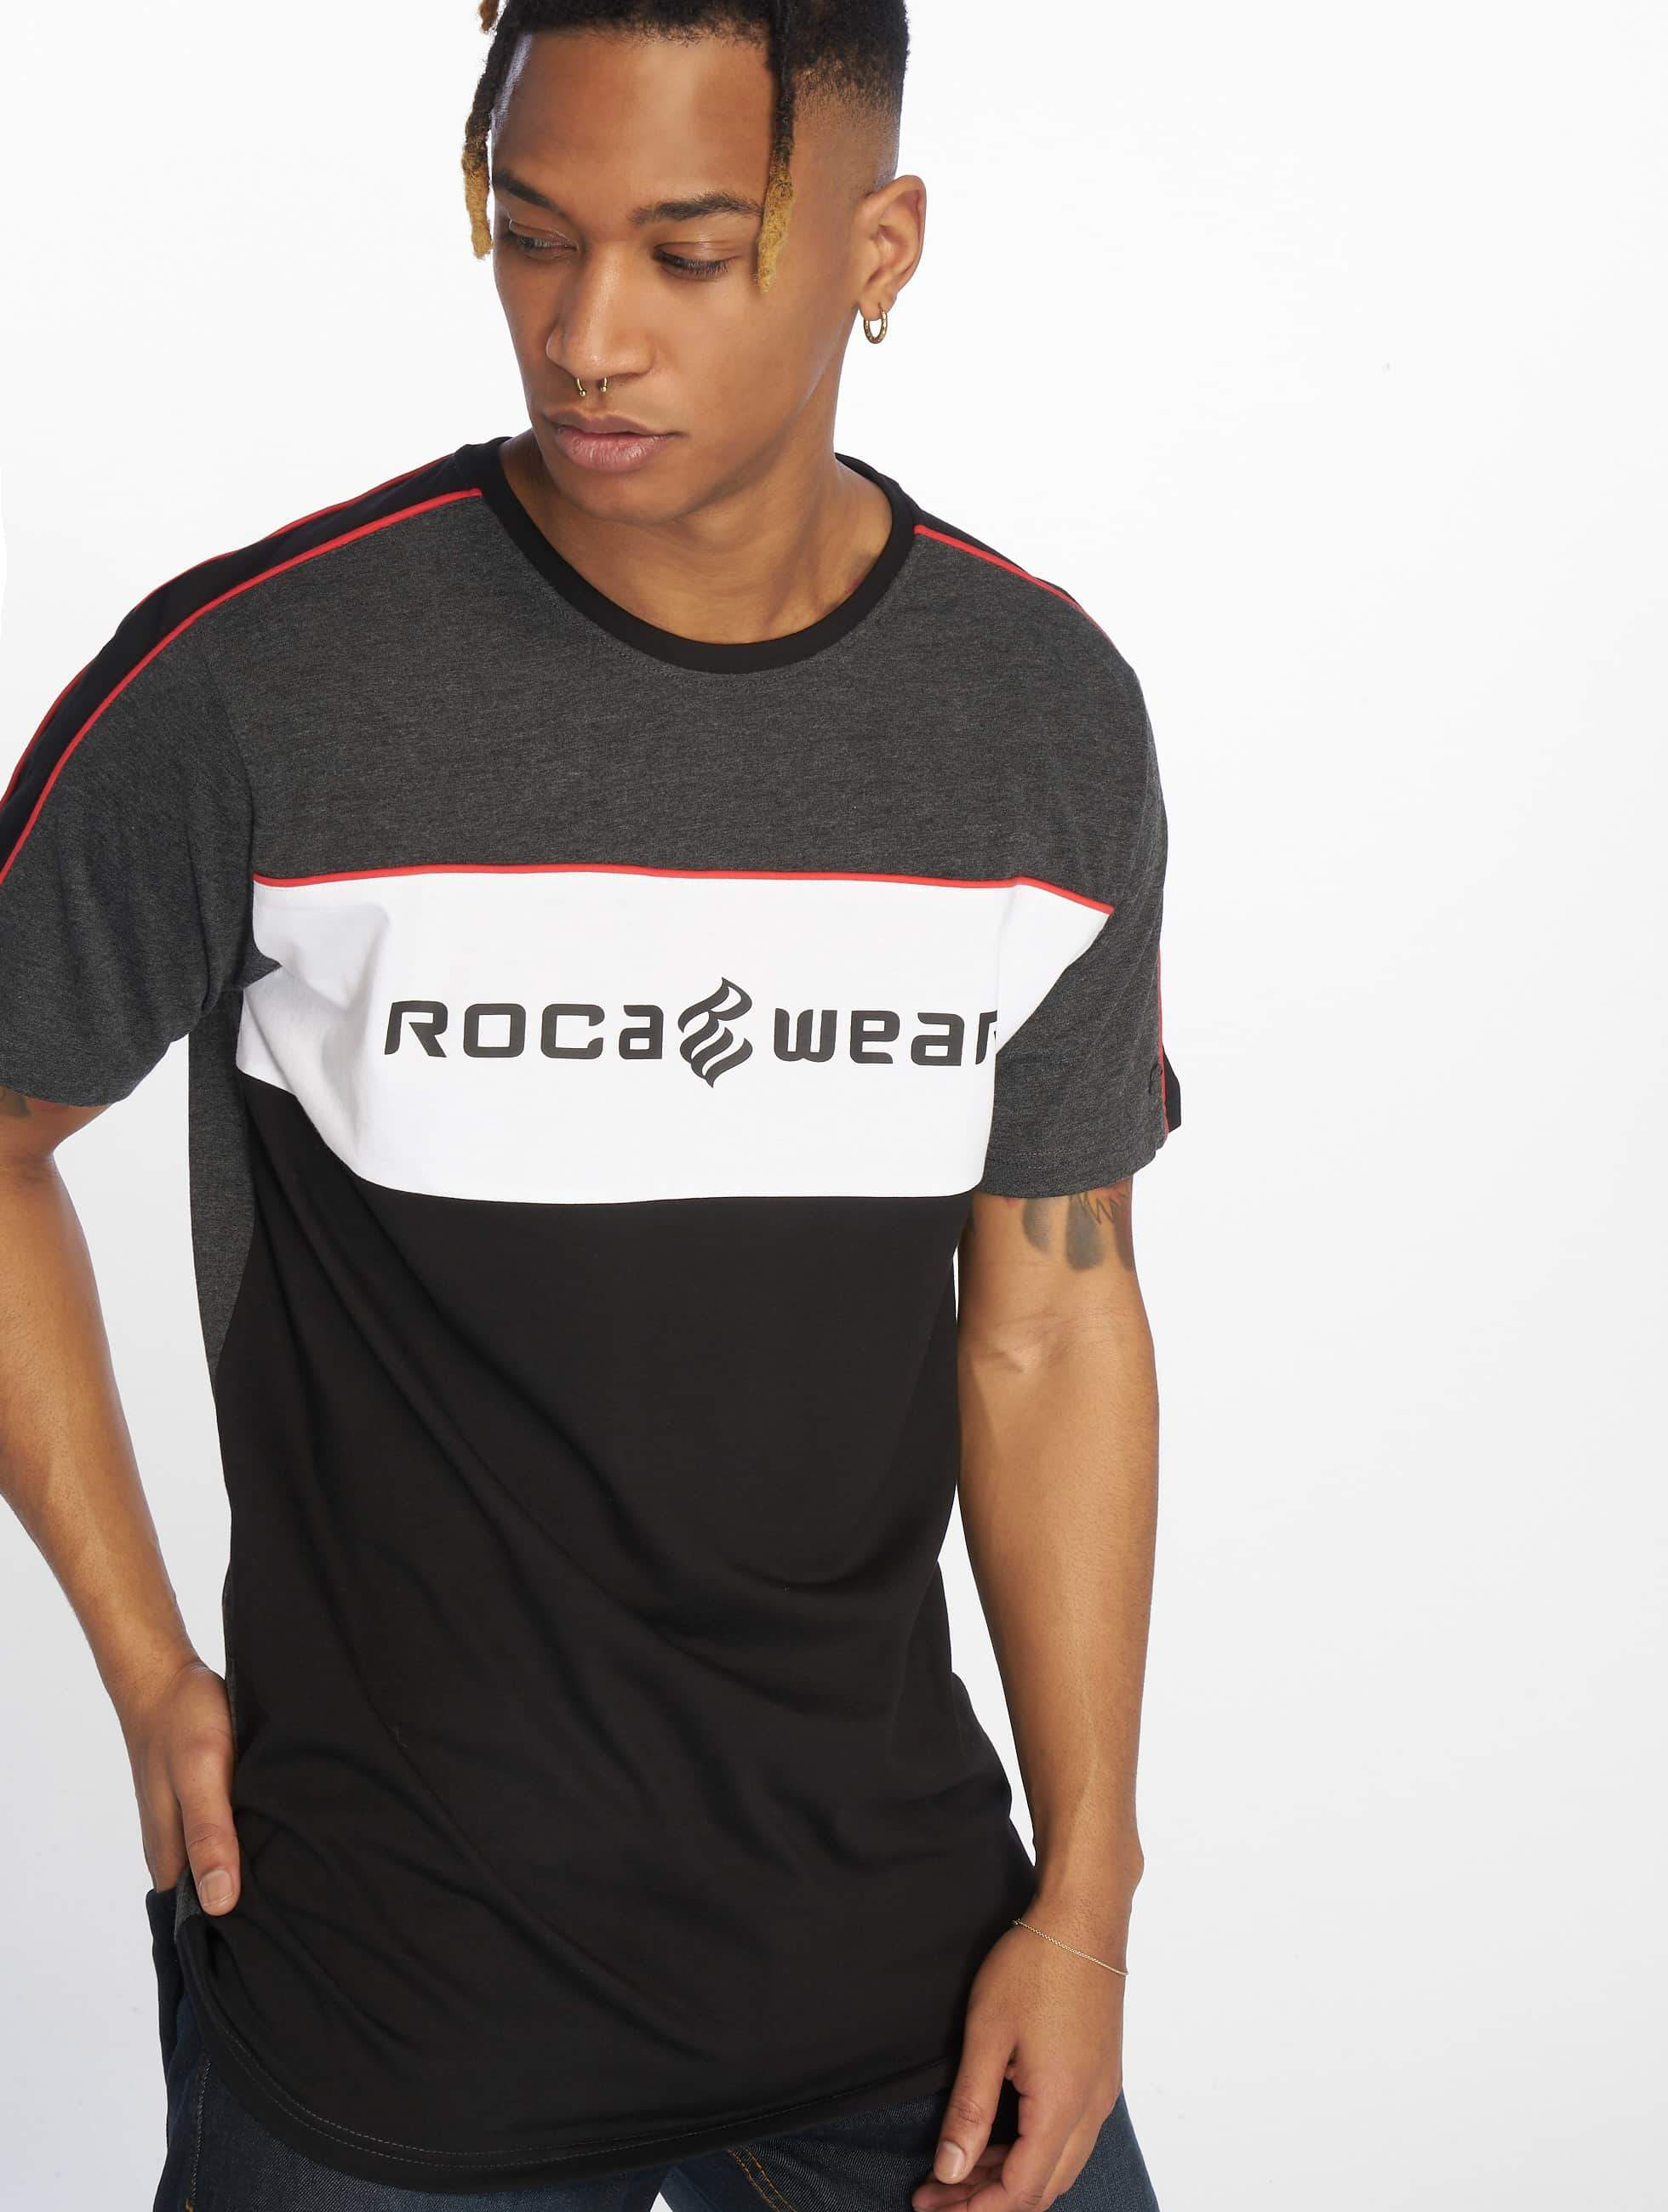 Rocawear / T-Shirt CB in black S